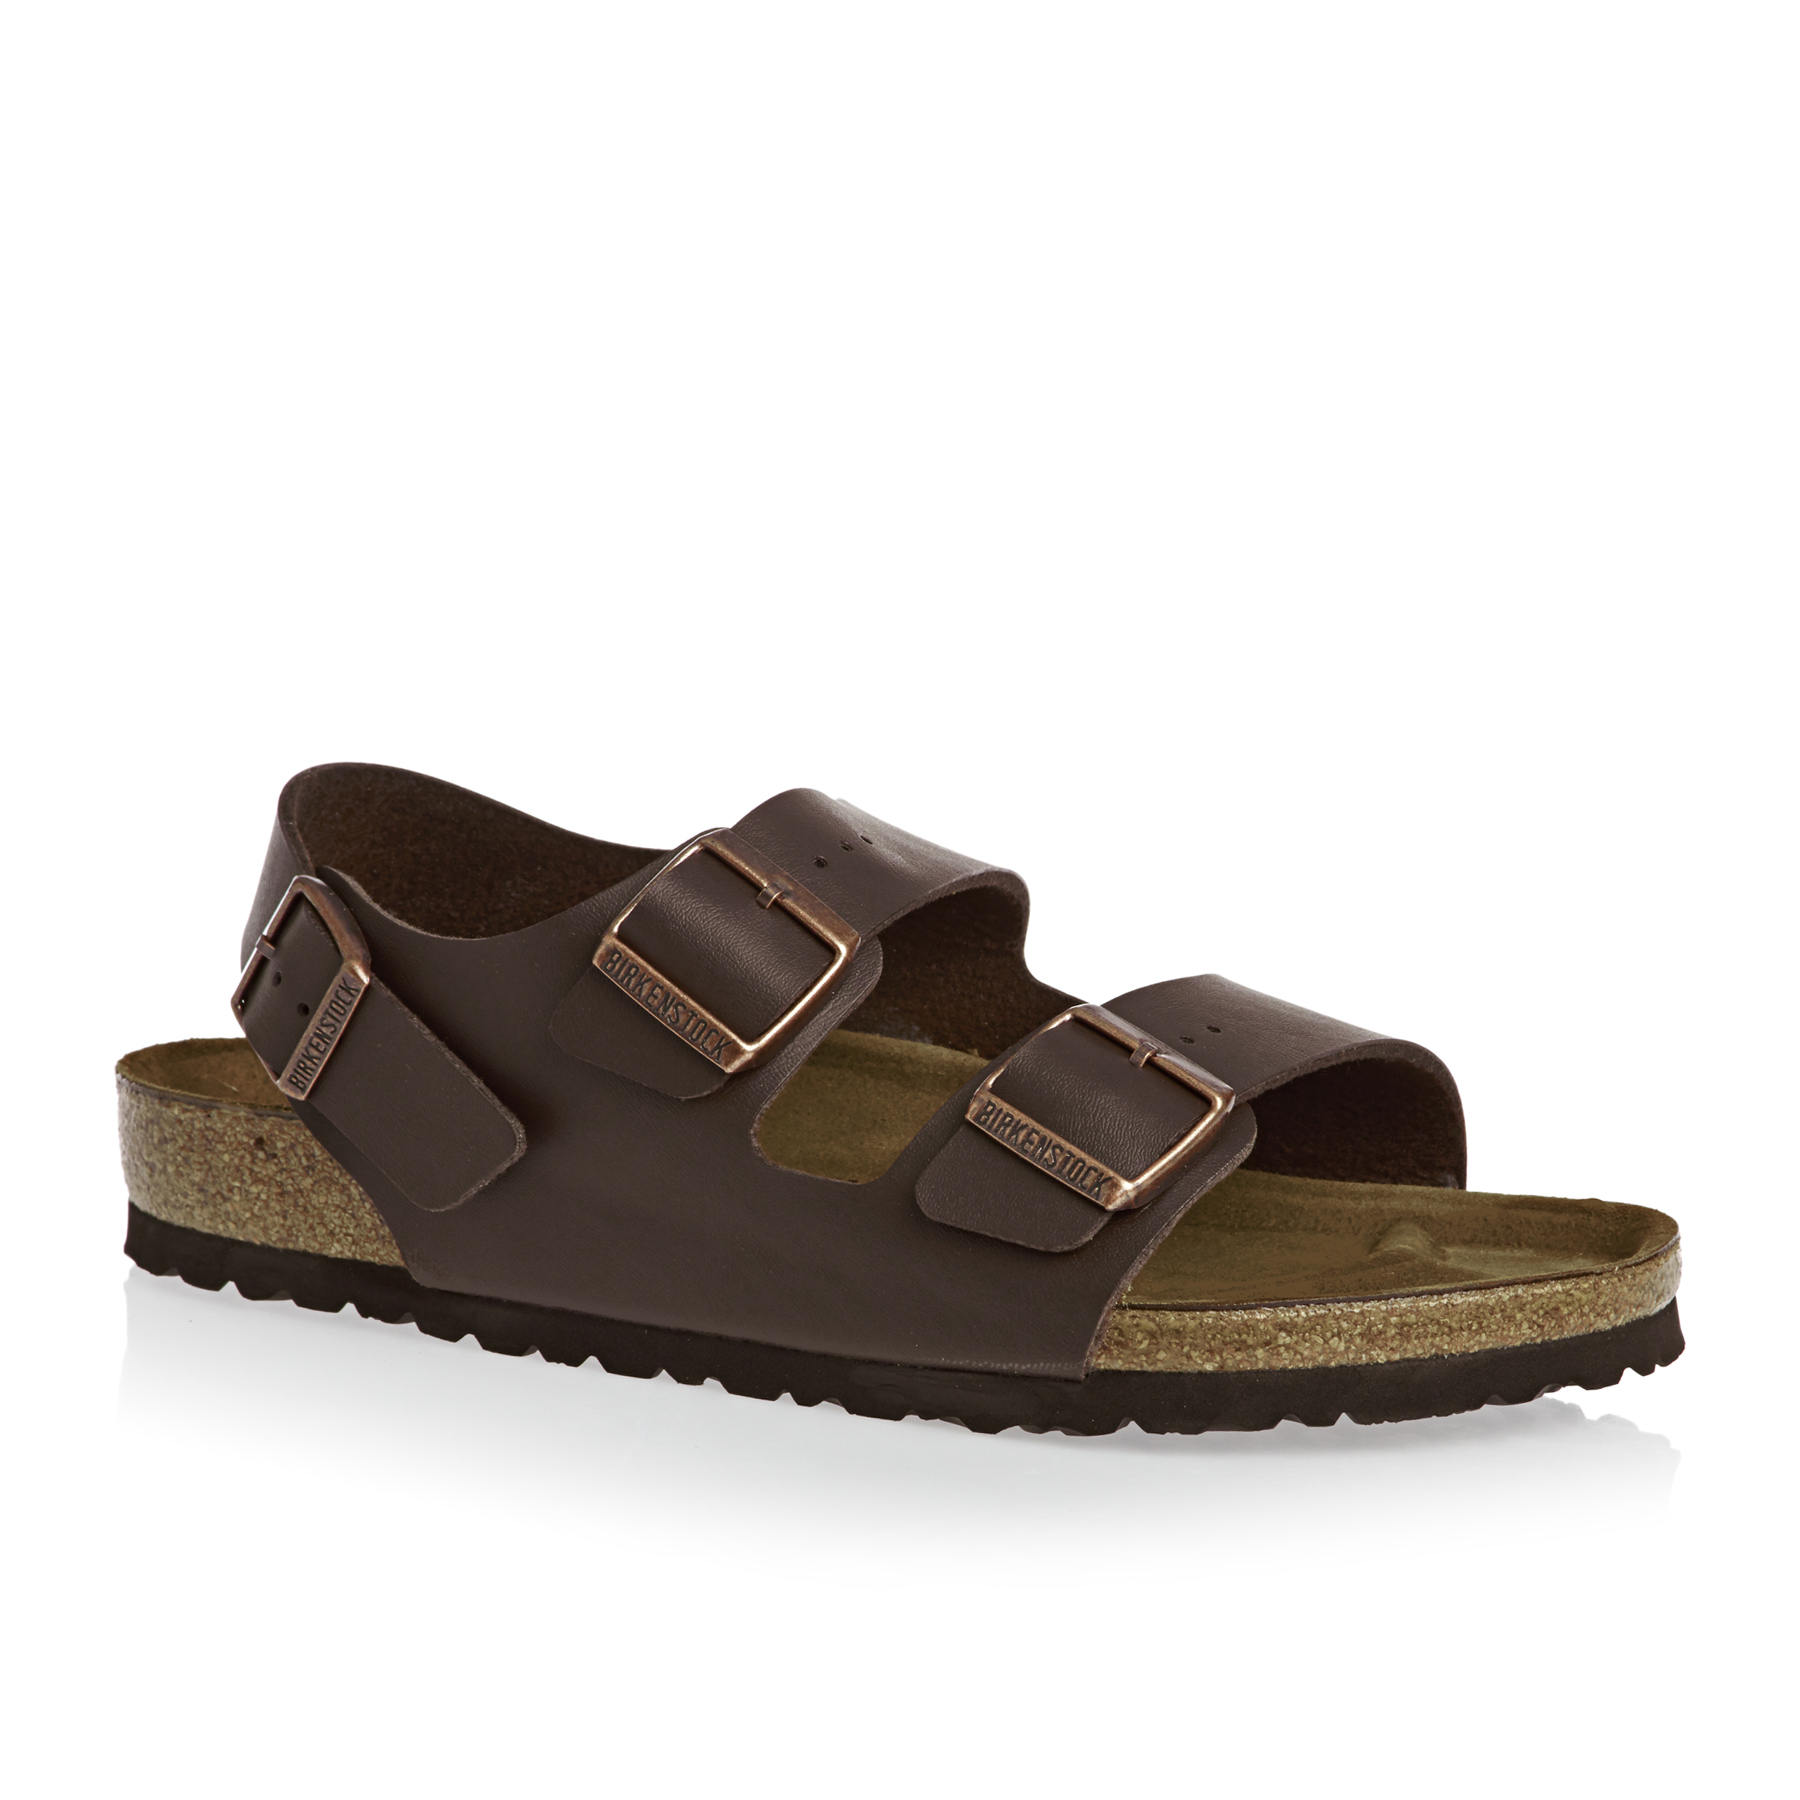 Birkenstock Milano Birko Flor Sandals | Free Delivery Options